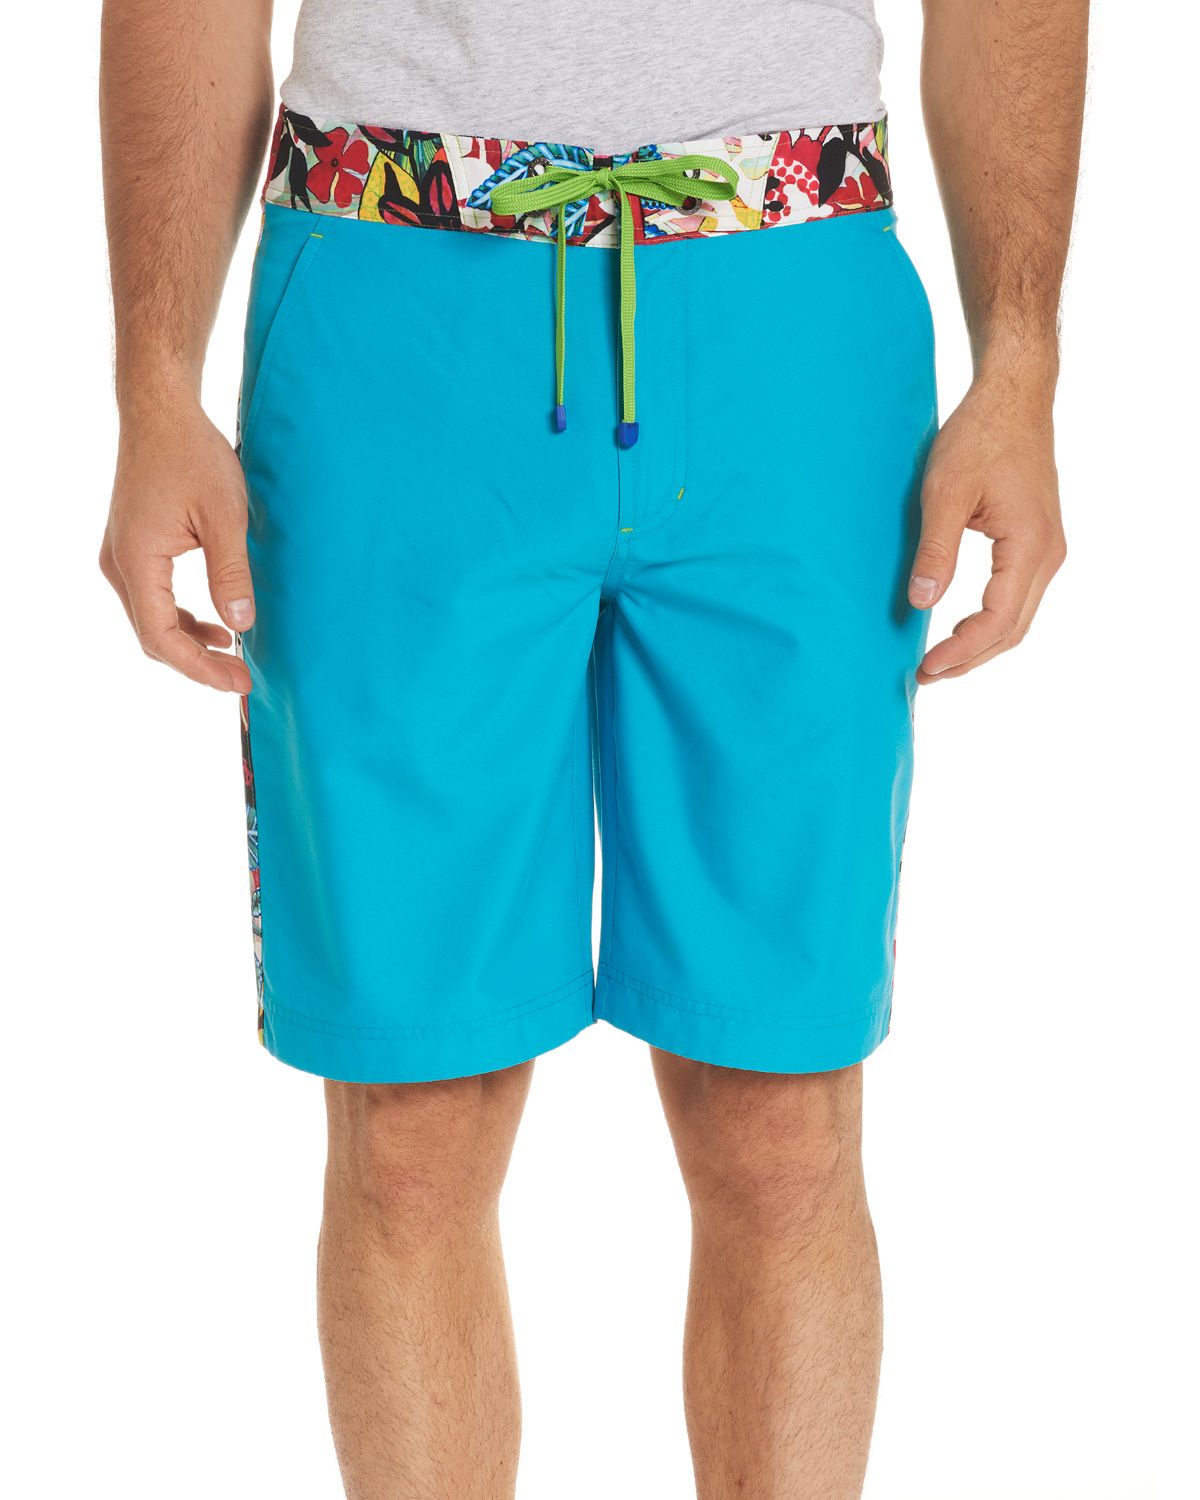 Dos Rios GraphicTrim Swim Trunks with WetDry ColorChange Effect